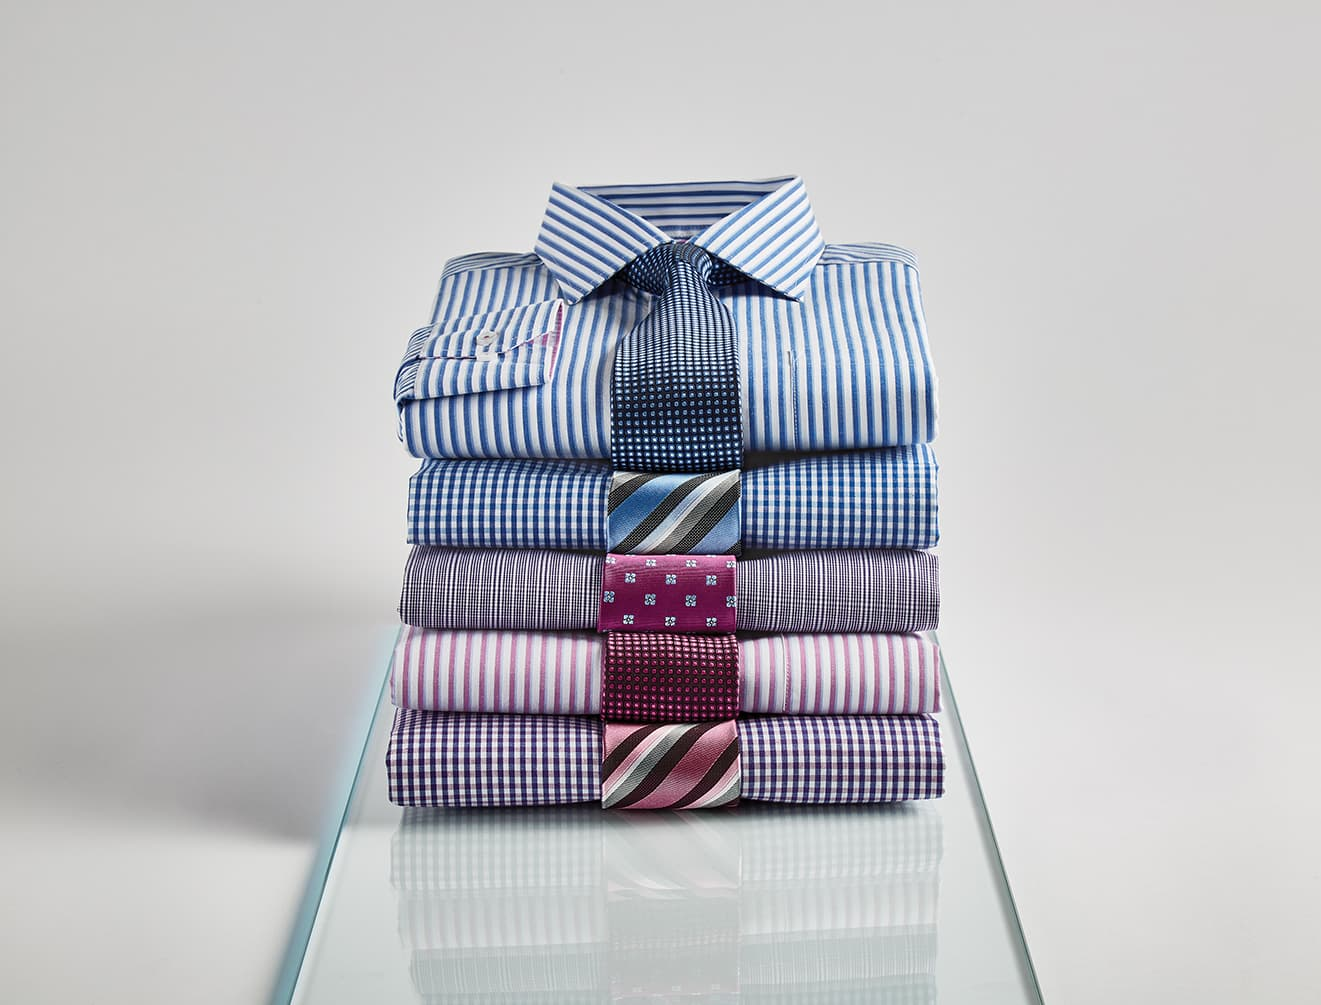 Double TWO Mens Formal Shirts and Ties AW18 Collection